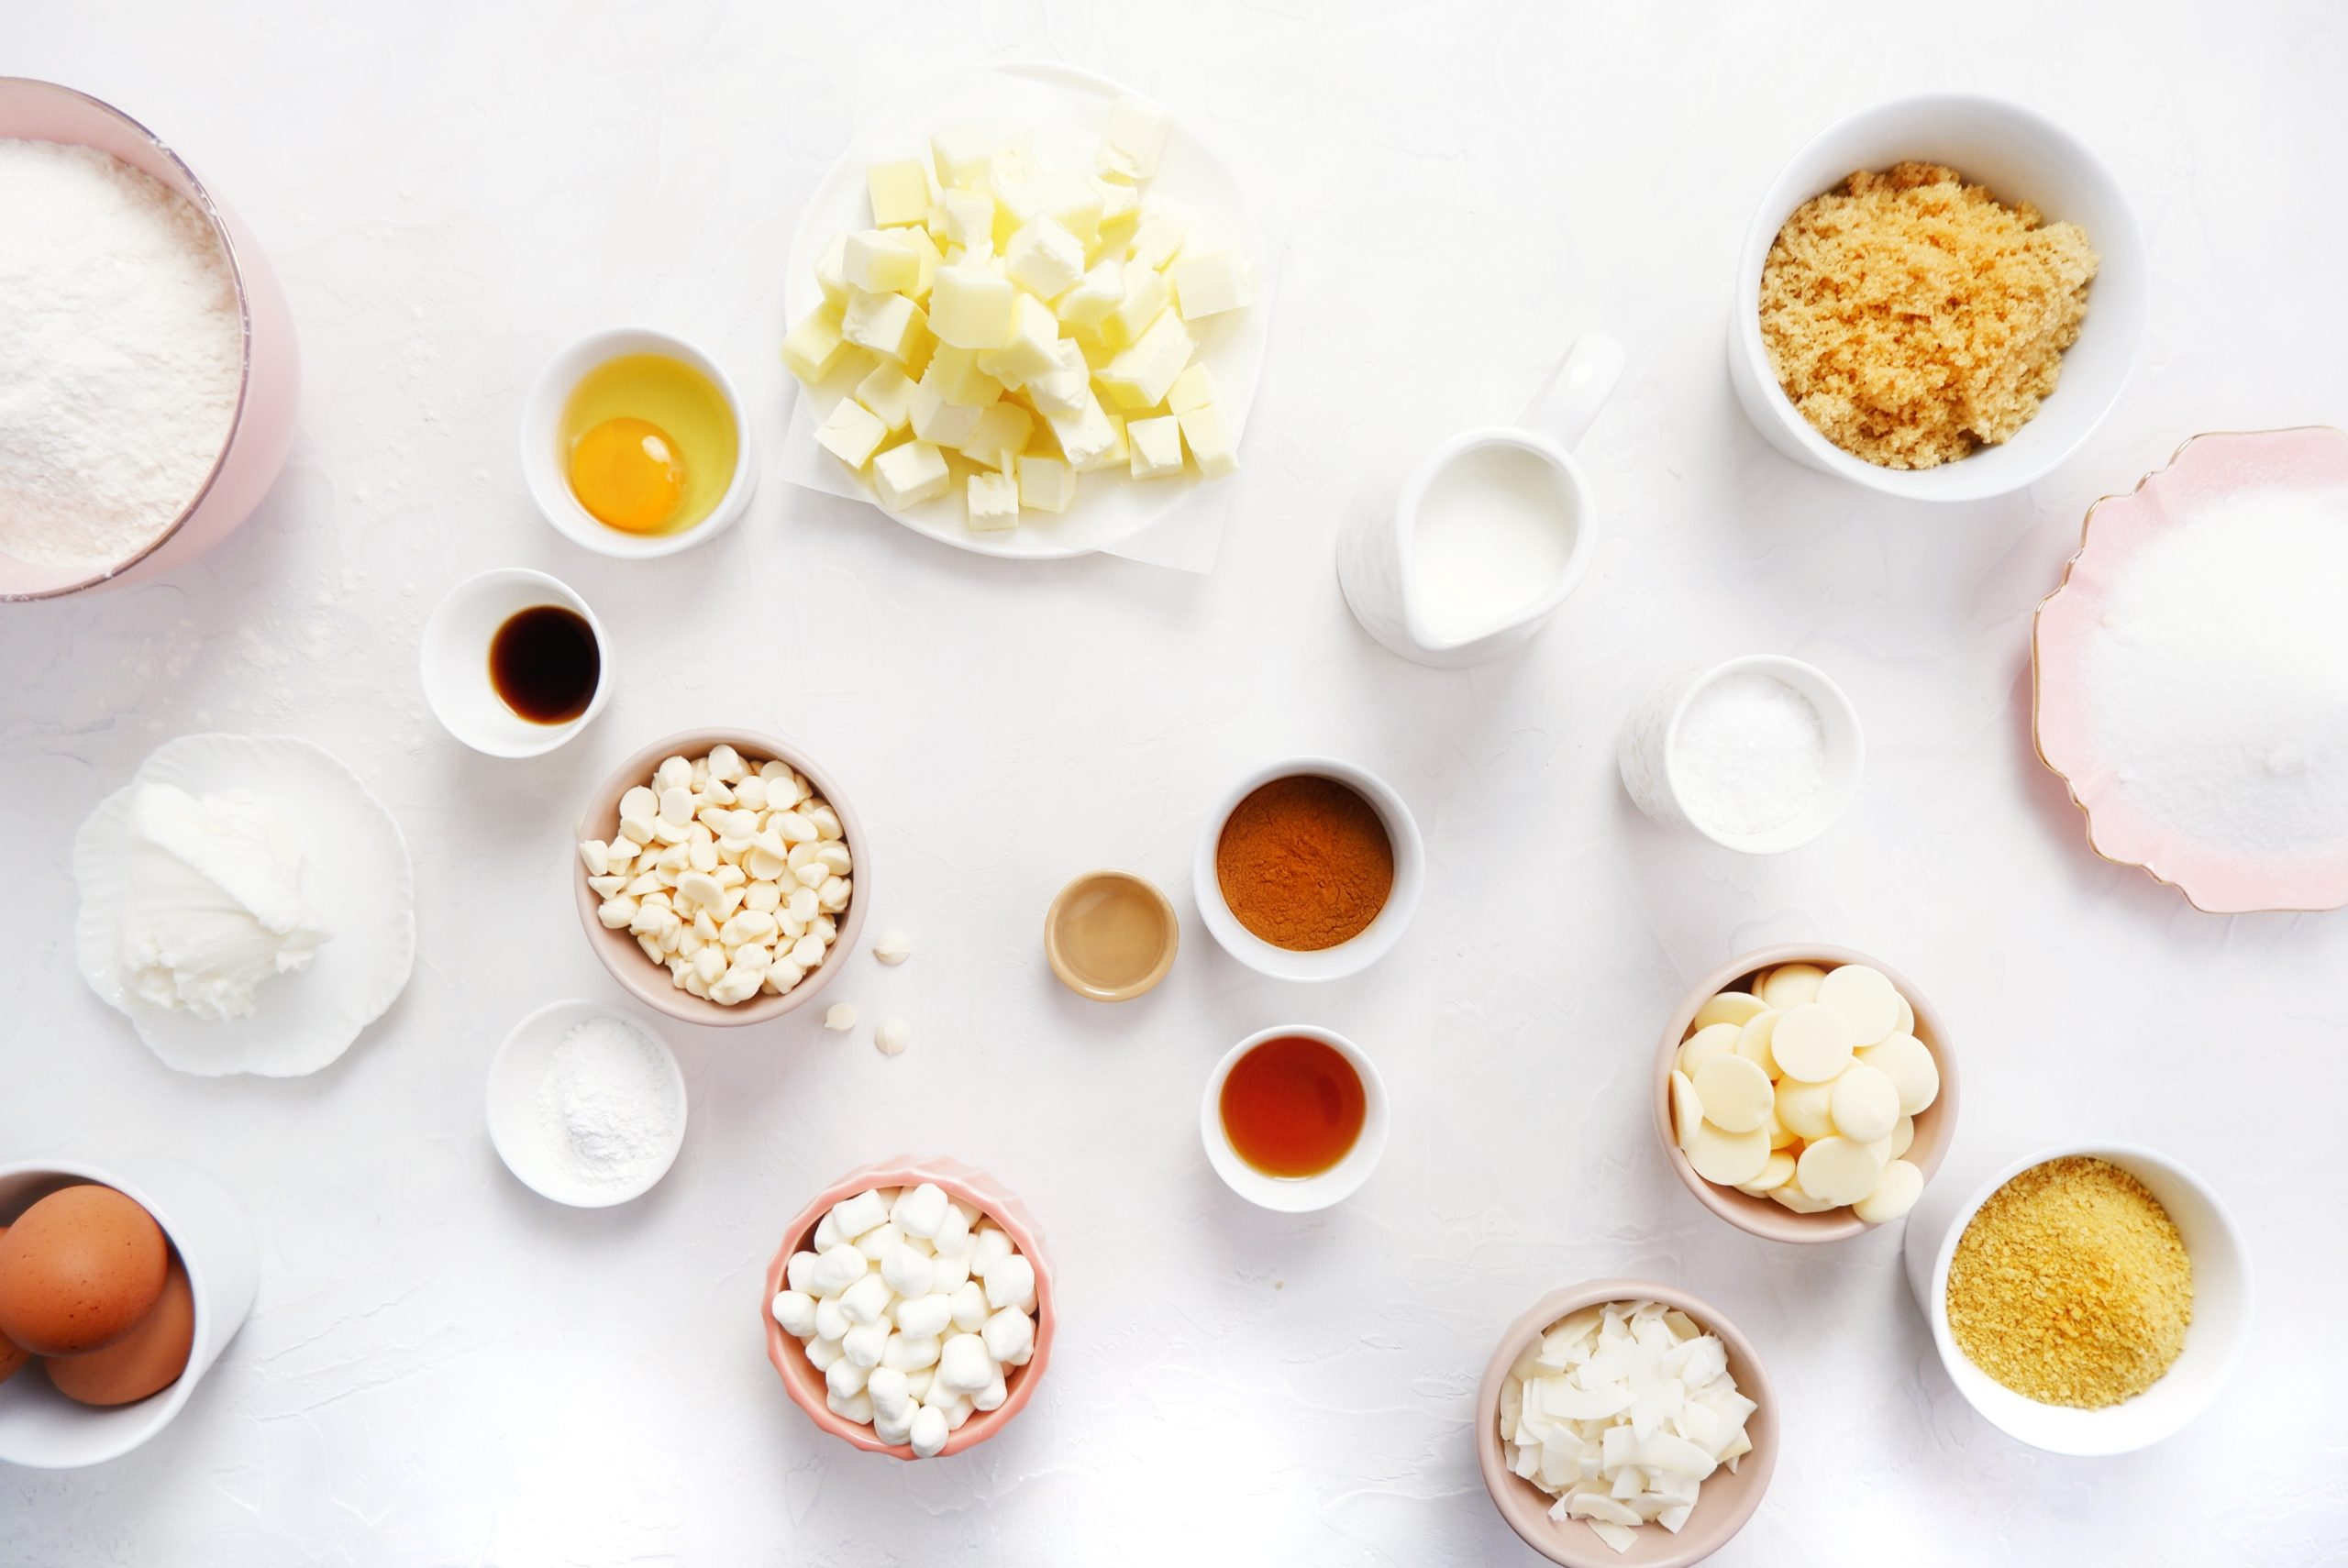 flour, sugar, butter, and other ingredients used in baking in bowls